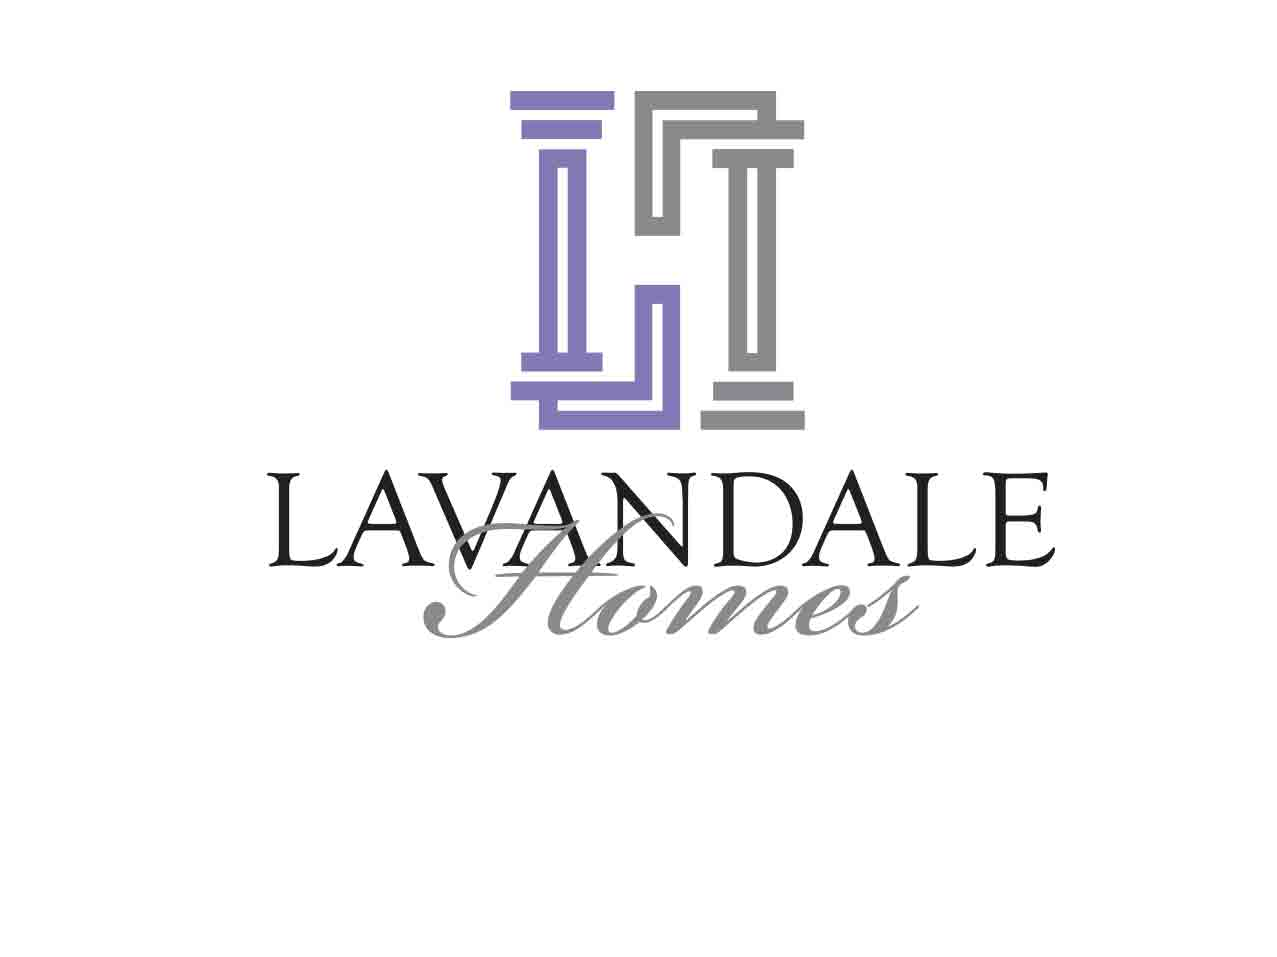 lavandale-homes-logo-design